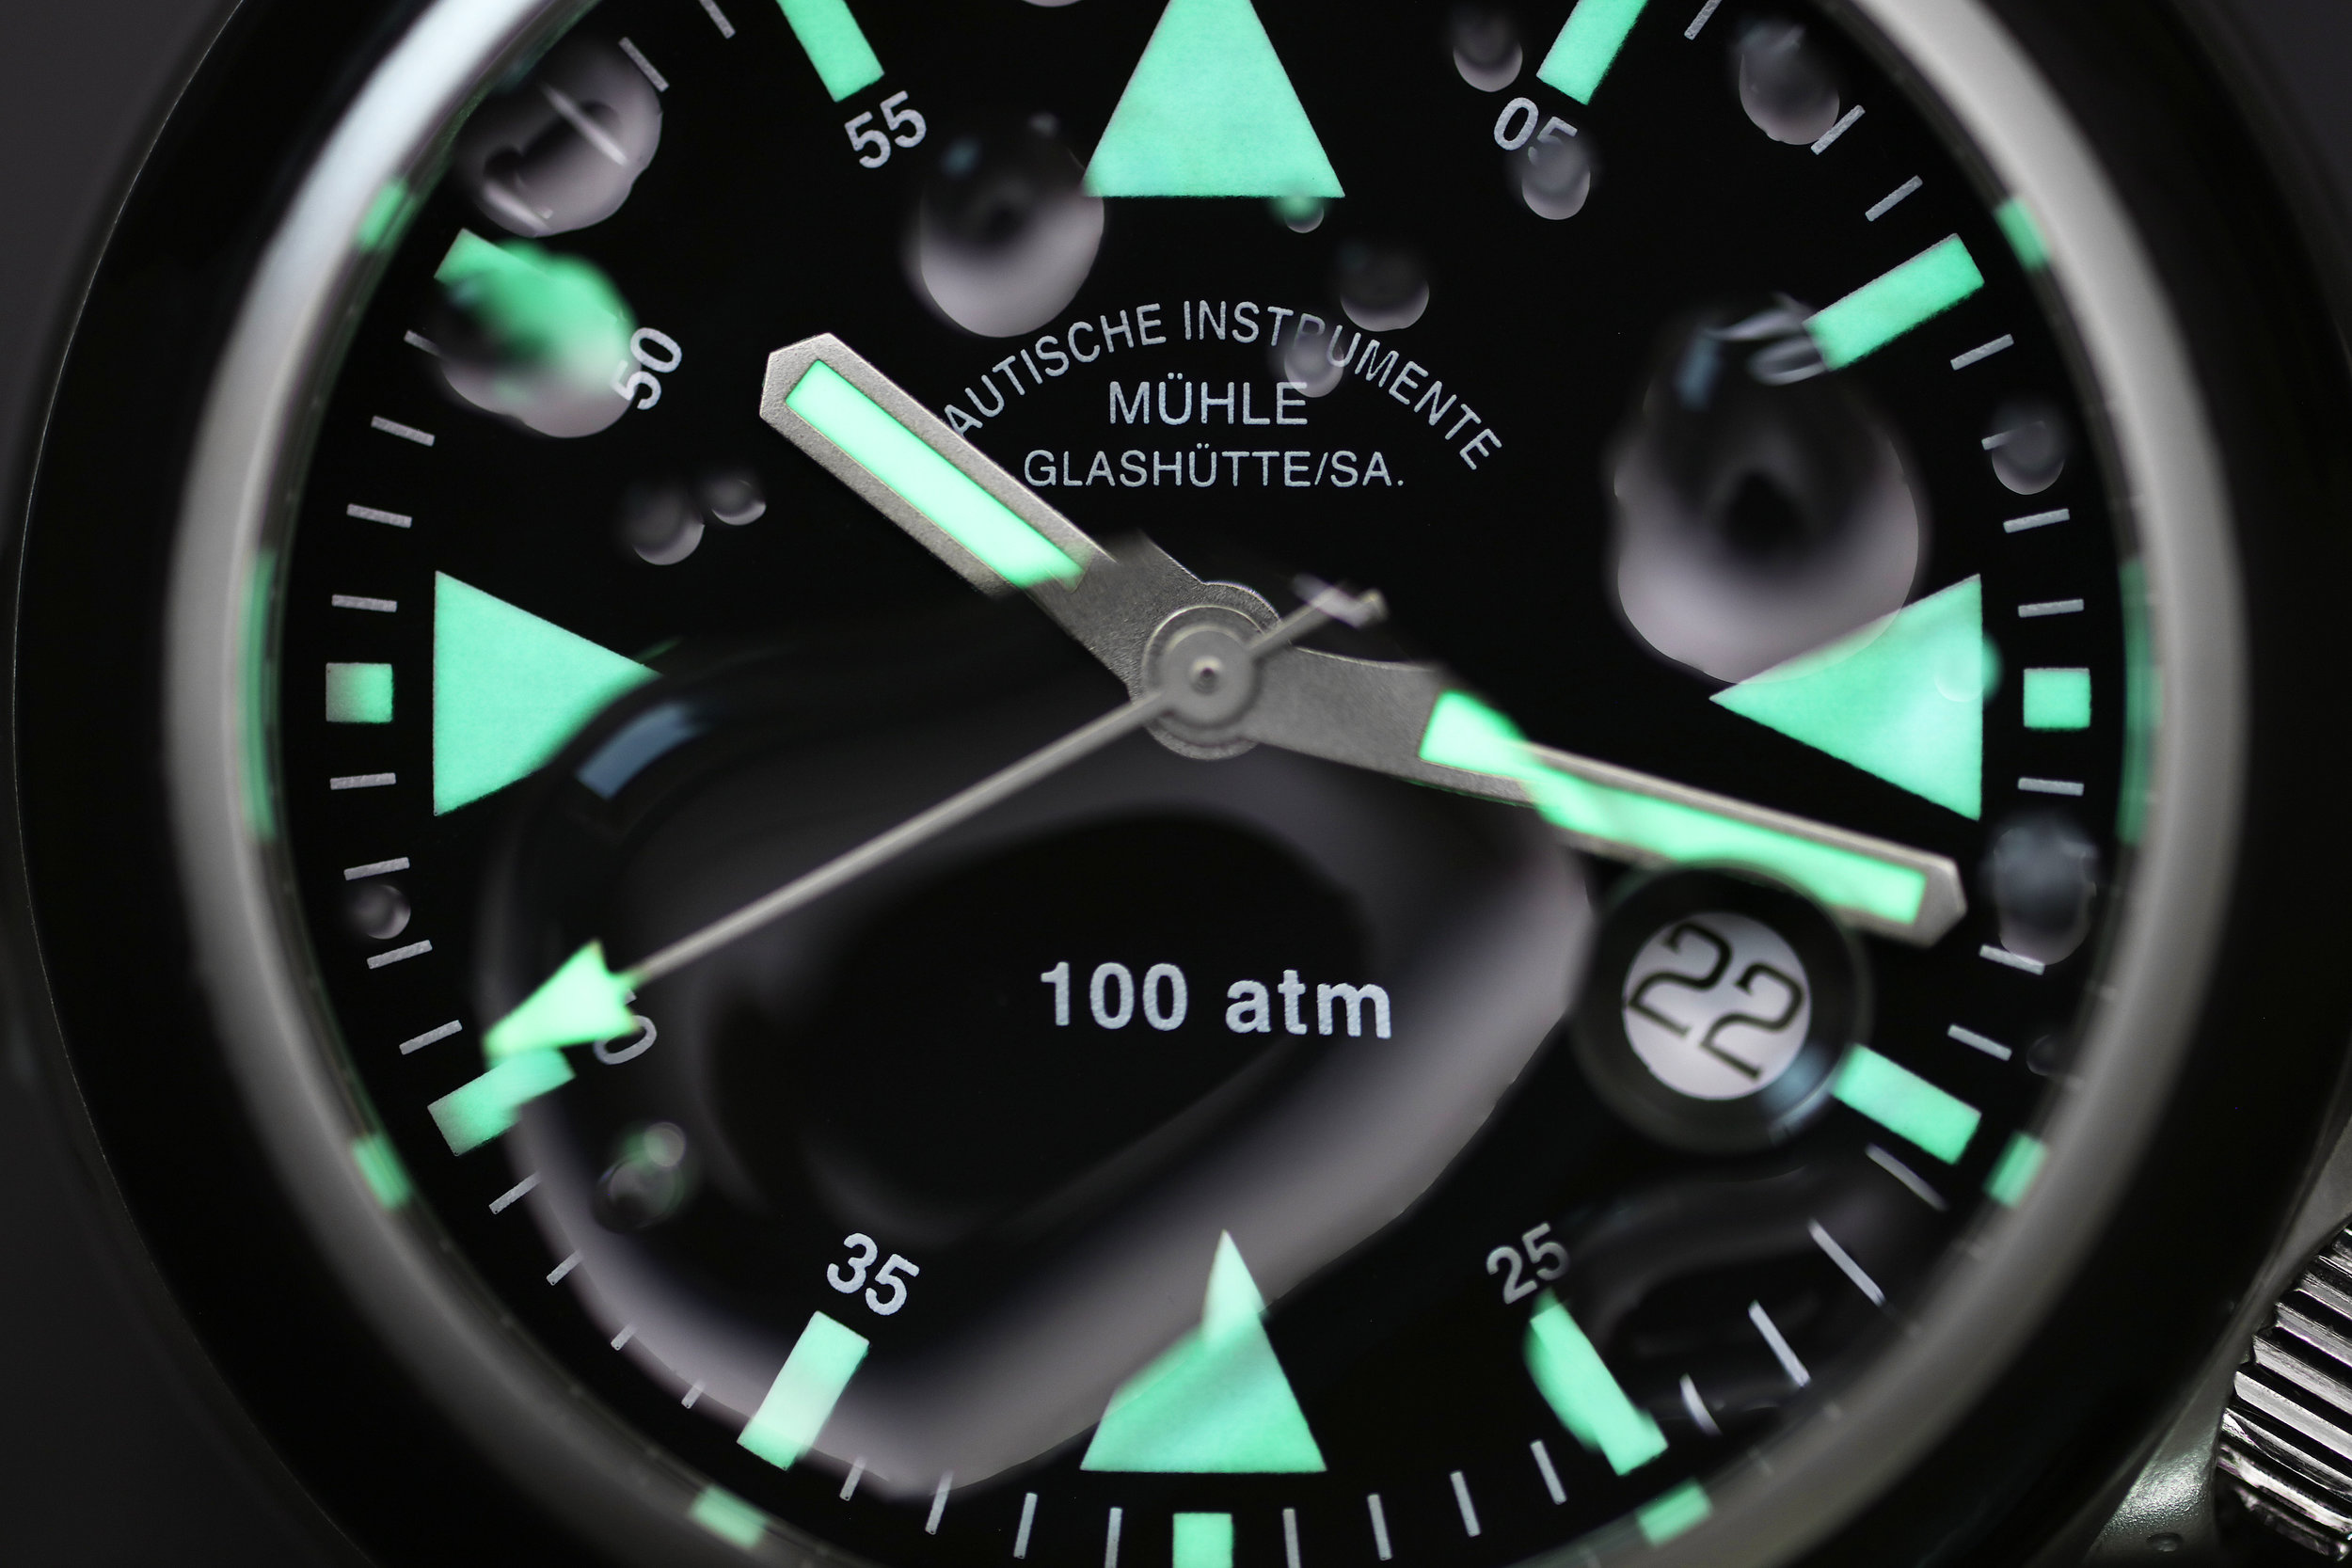 The lume on The S.A.R. glows very bright.